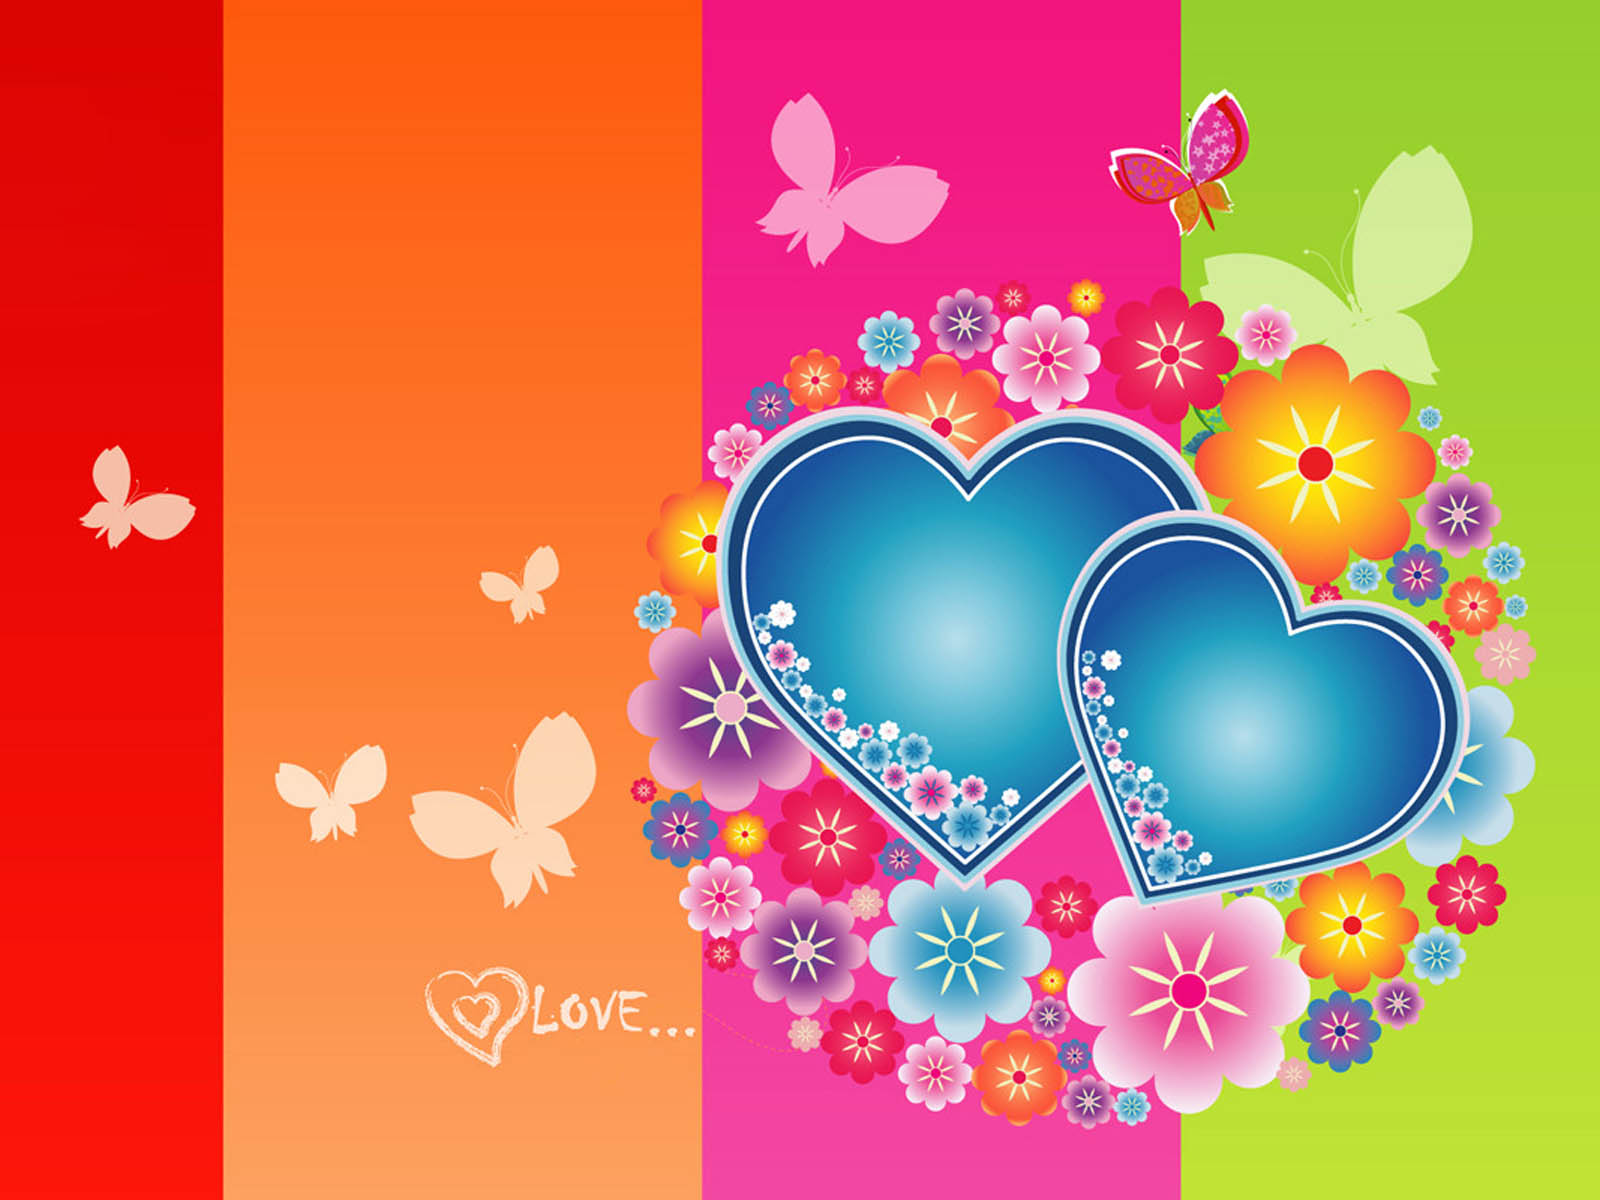 Wallpaper Love Heart Wallpapers